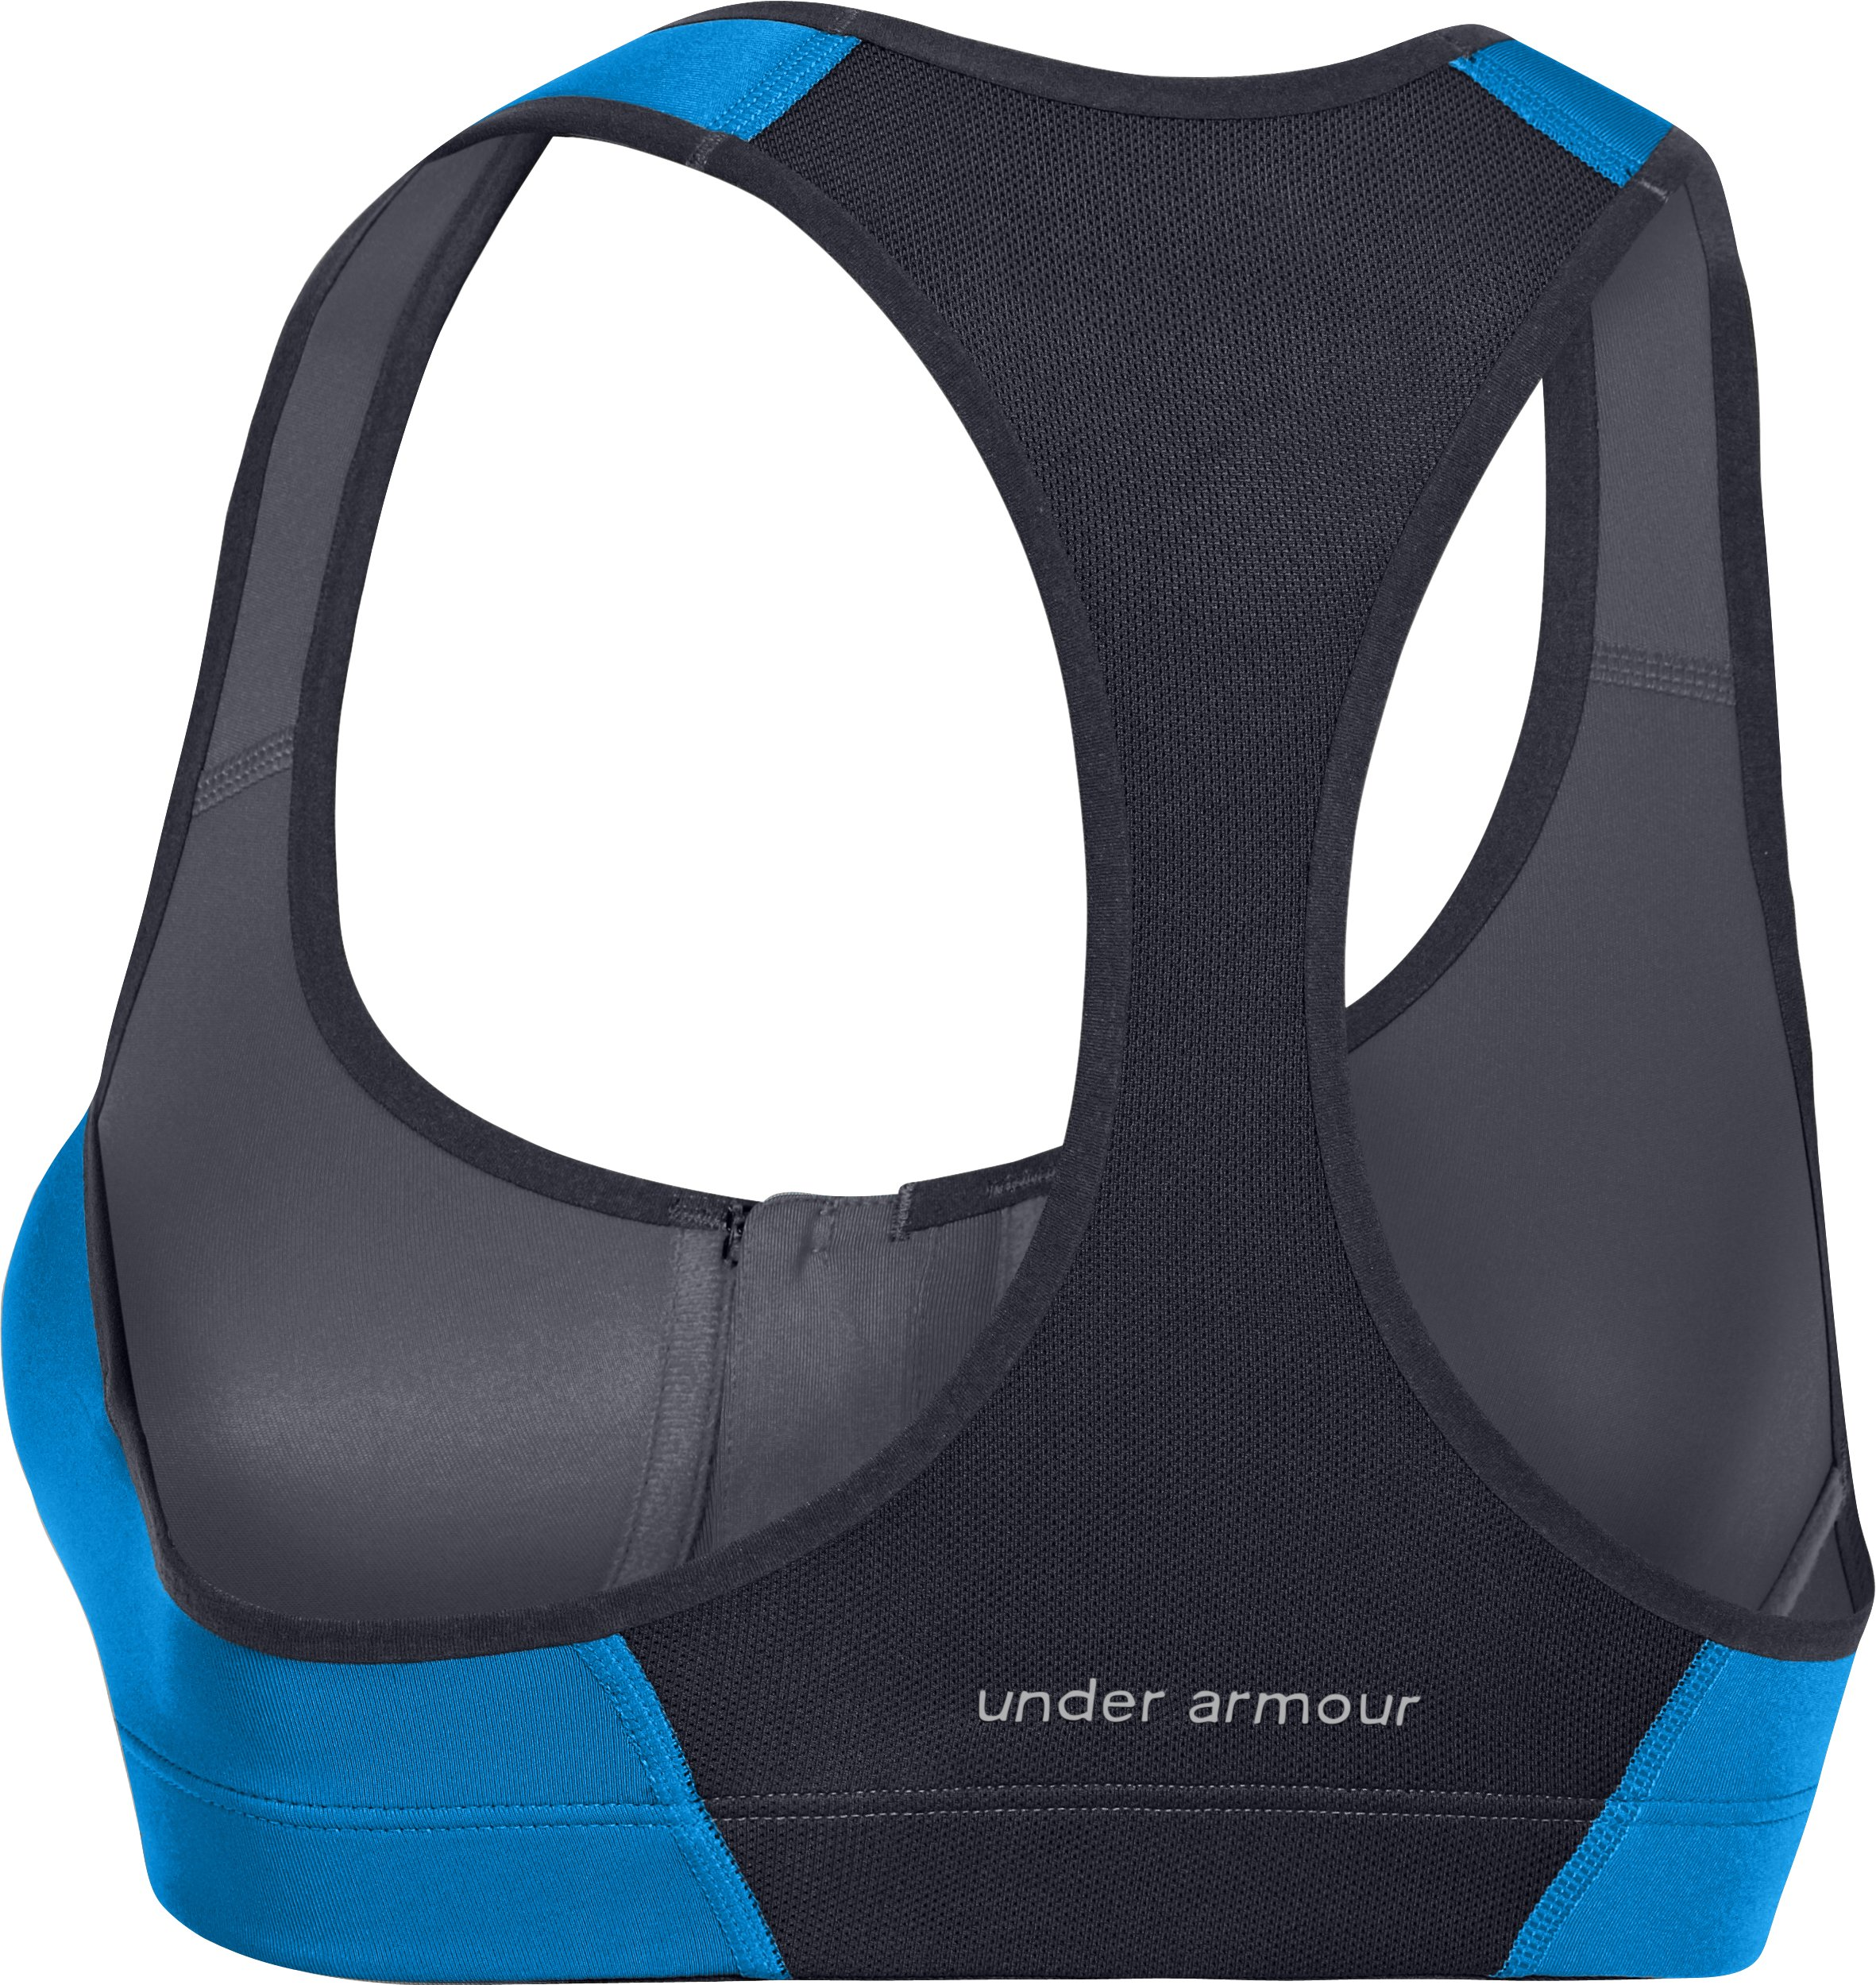 Armour Bra® Protegée C Cup, ELECTRIC BLUE, undefined